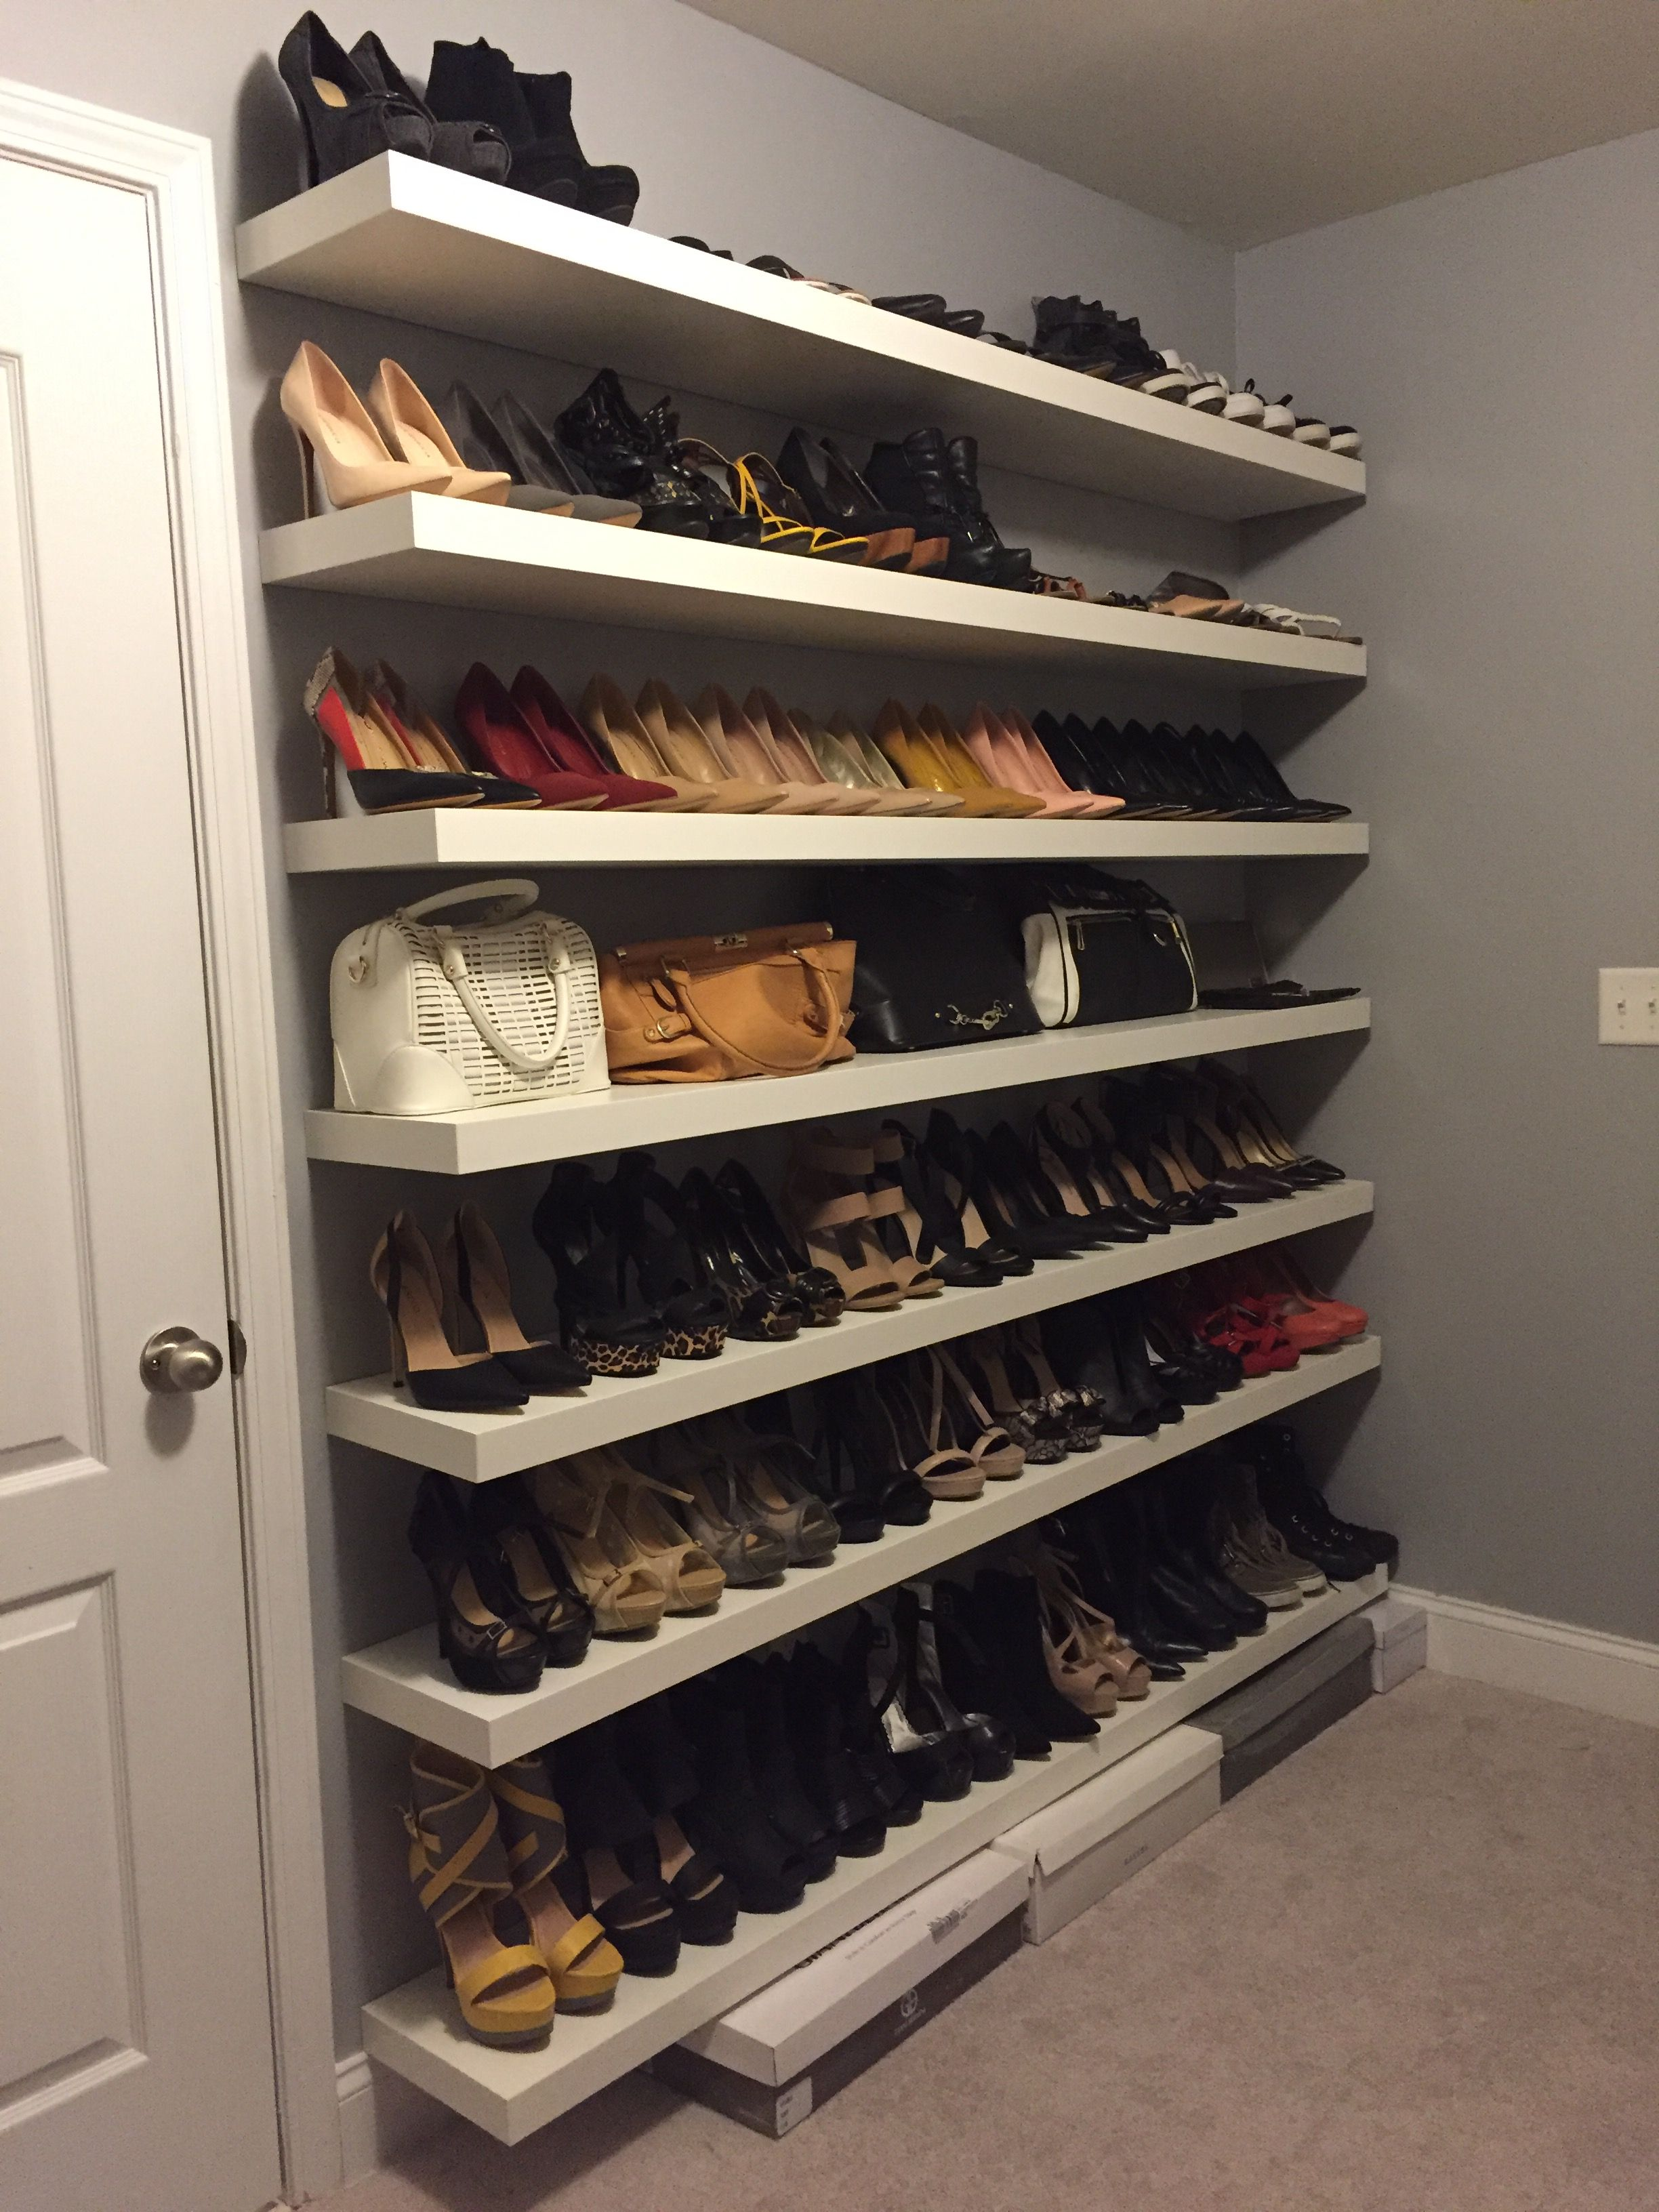 New Shoe Shelves Installed And Walls Painted Grey Diy Bree Kemp